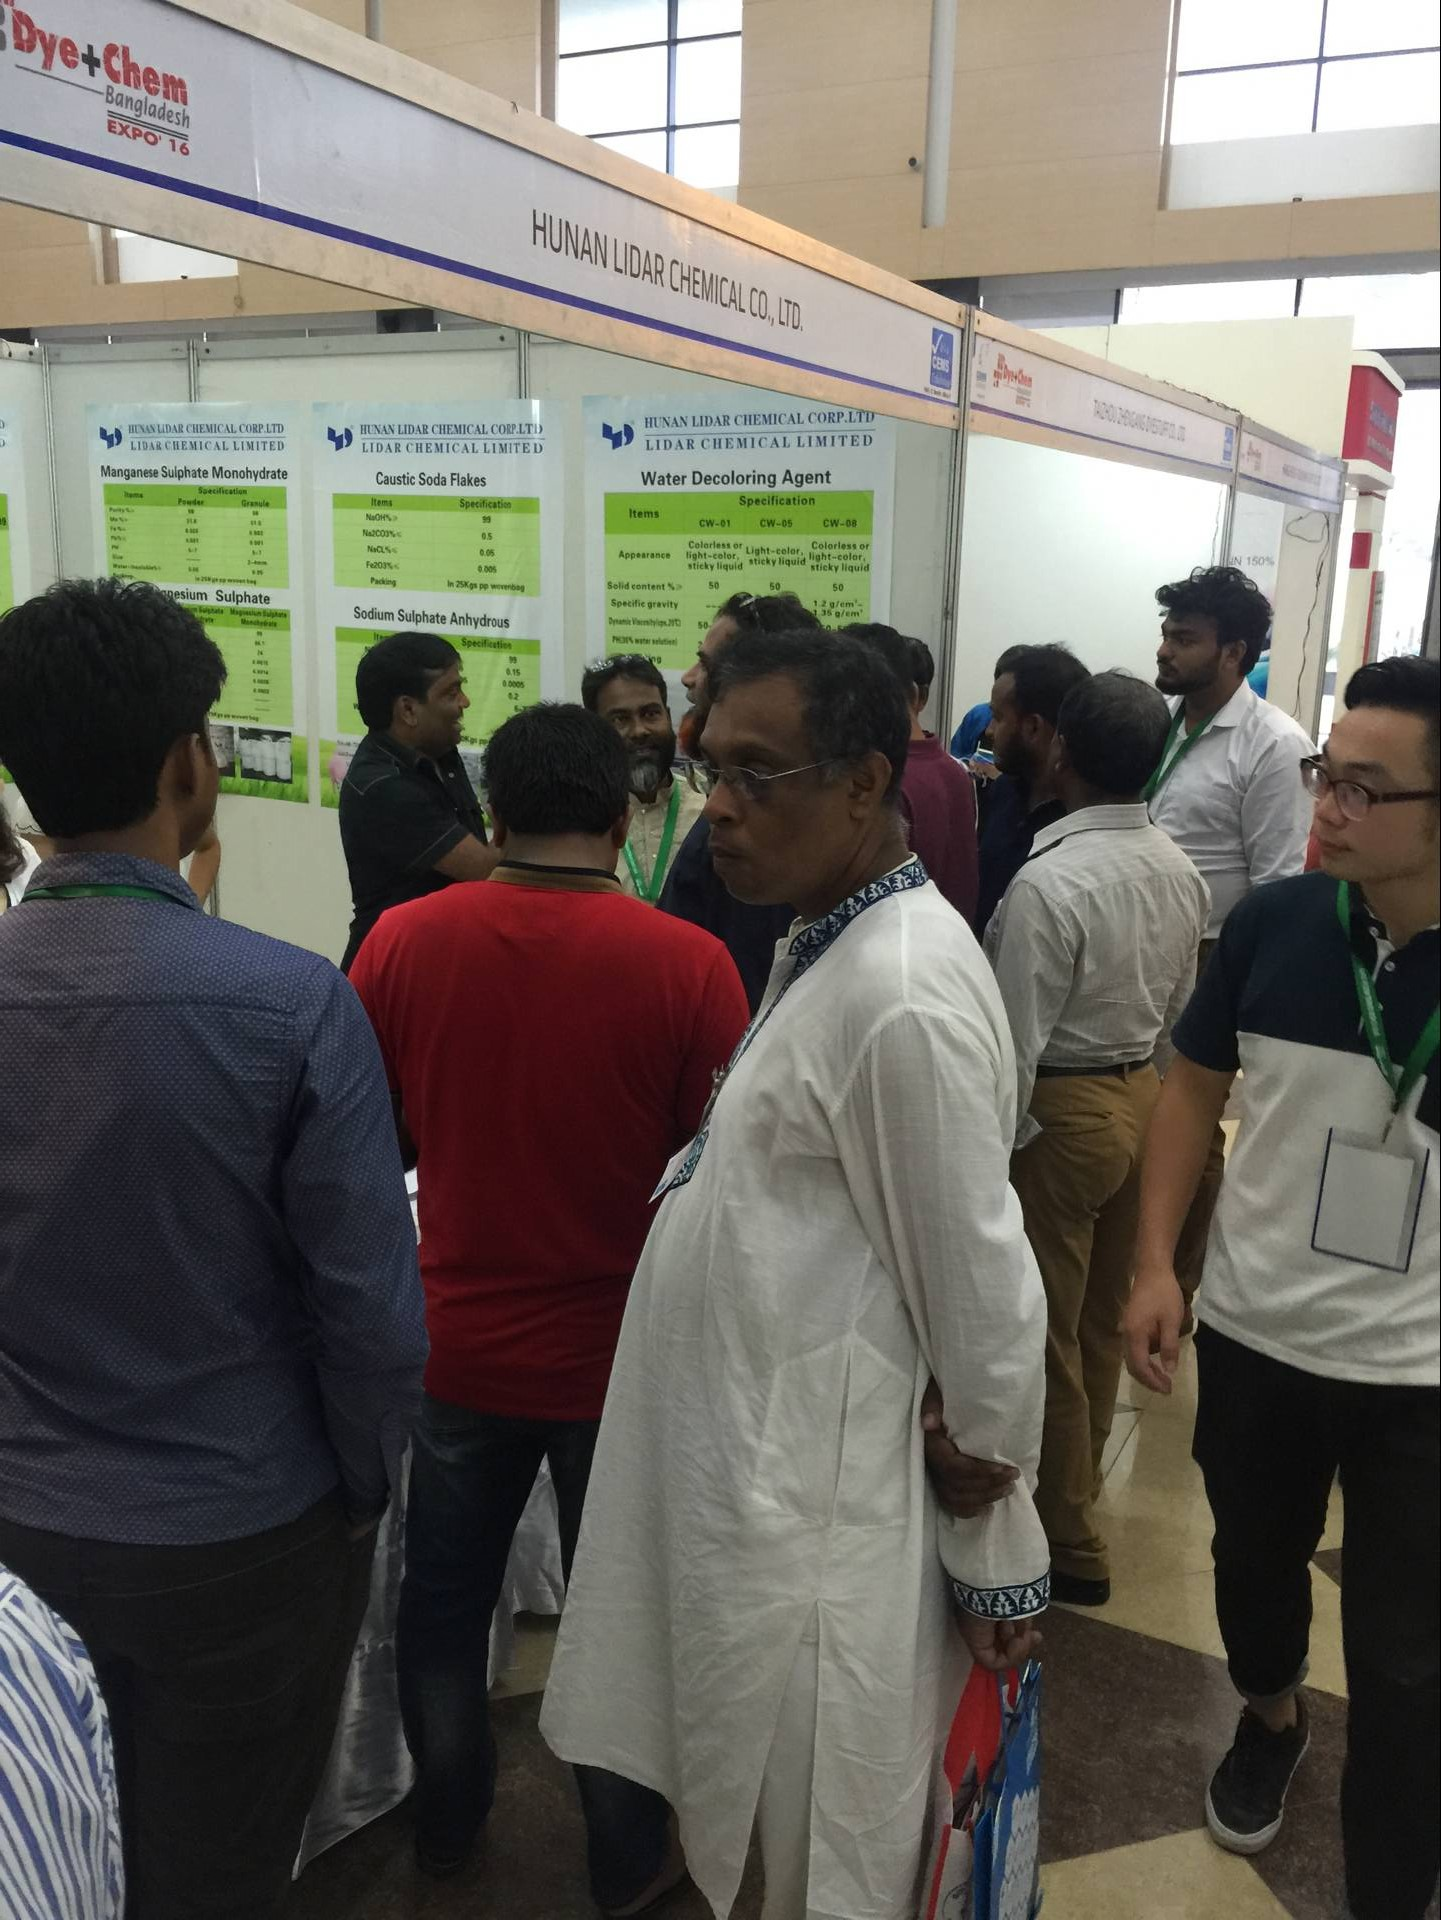 We are Here--The 28th Dye +chem Bangladesh dhaka--booth no.C